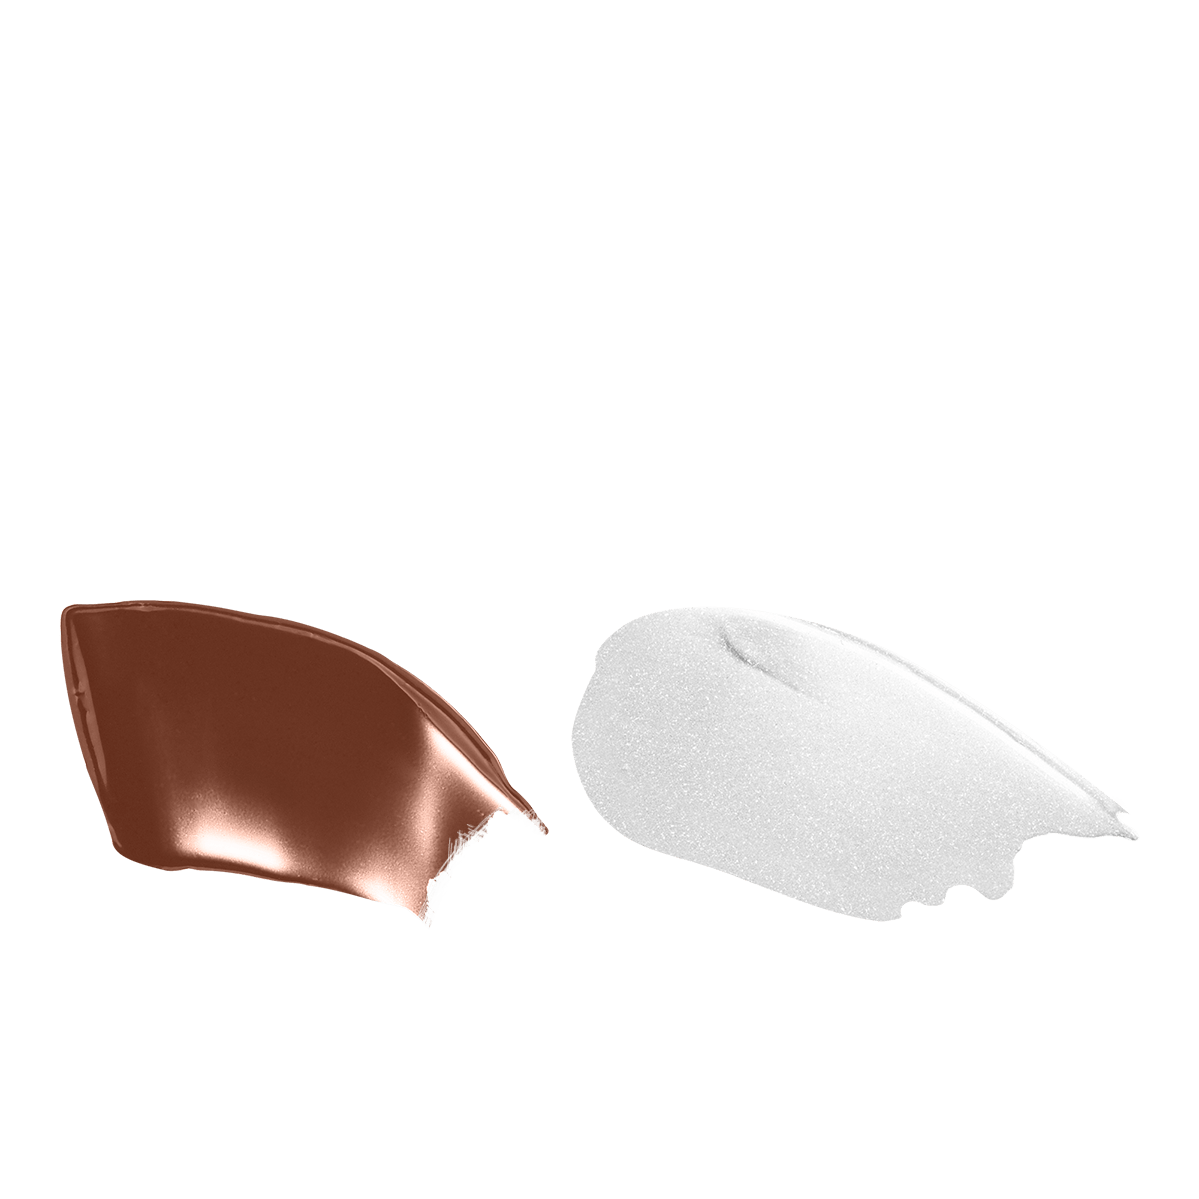 collab-contour-and-glow-cream-sculpting-palette-mediumdeep-shade.png